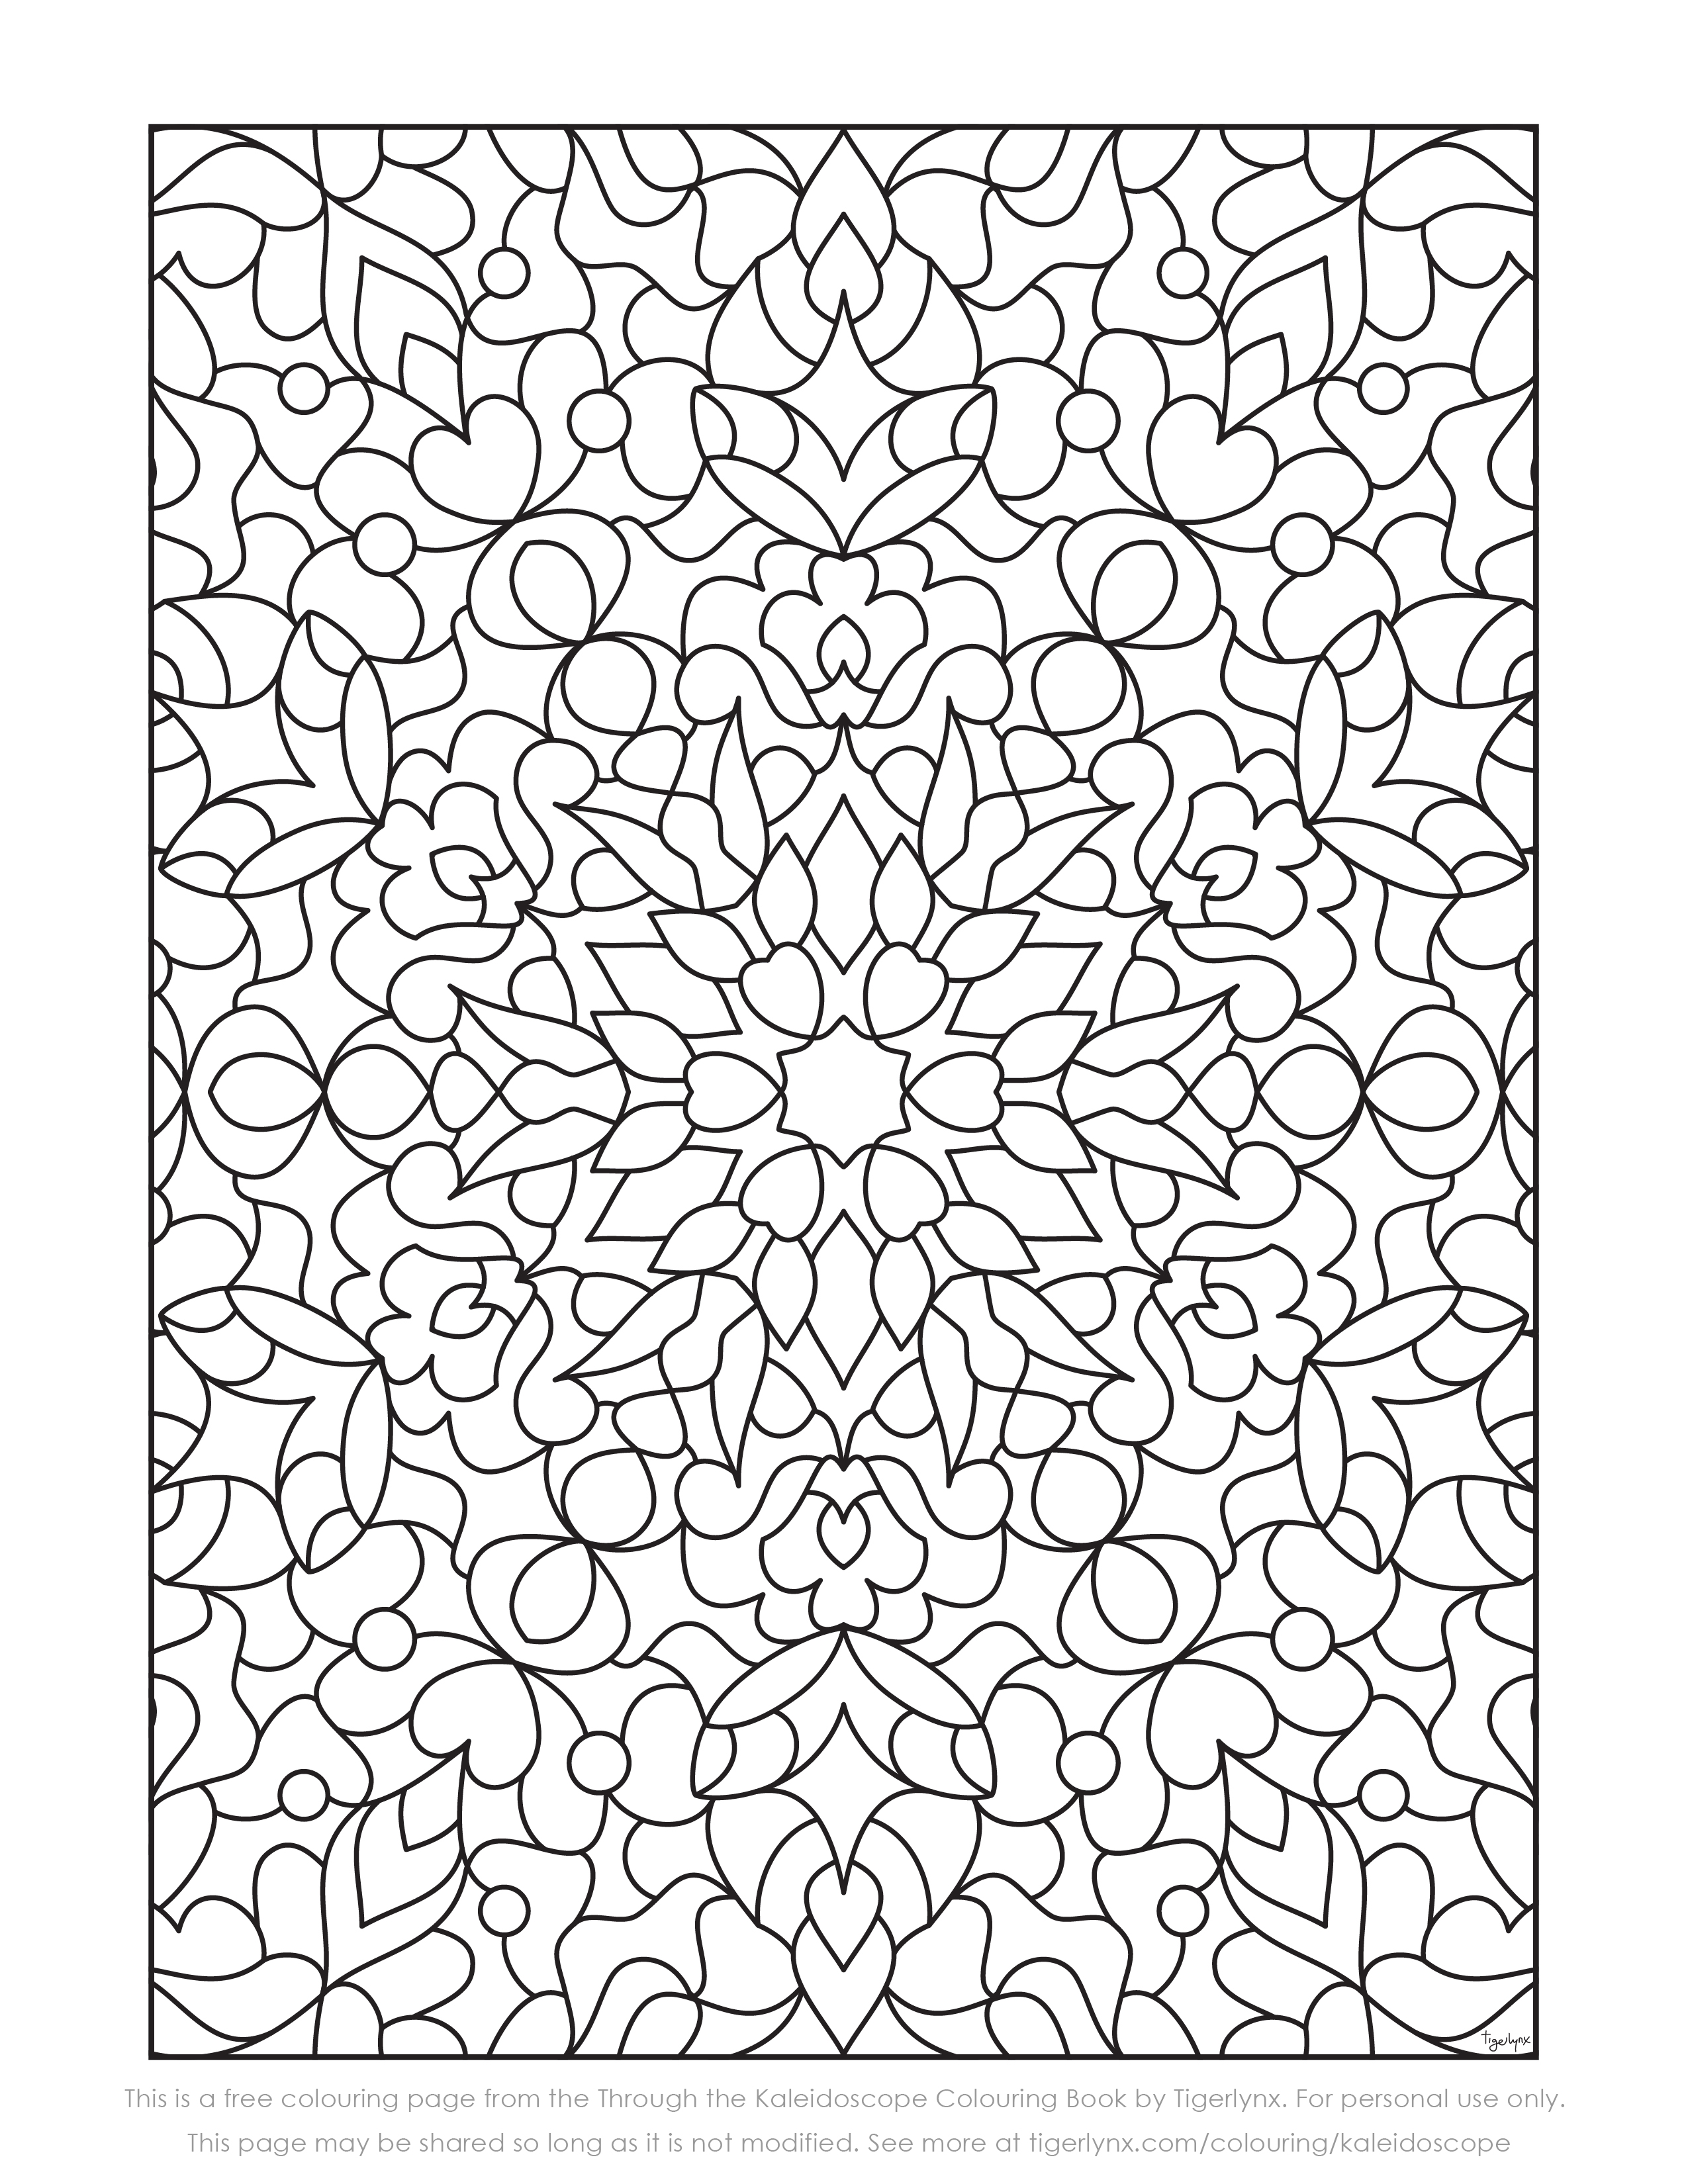 Following The Release Of My Latest Adult Colouring Book Through Kaleidoscope Ive Now Added Another Free Page For You To Download